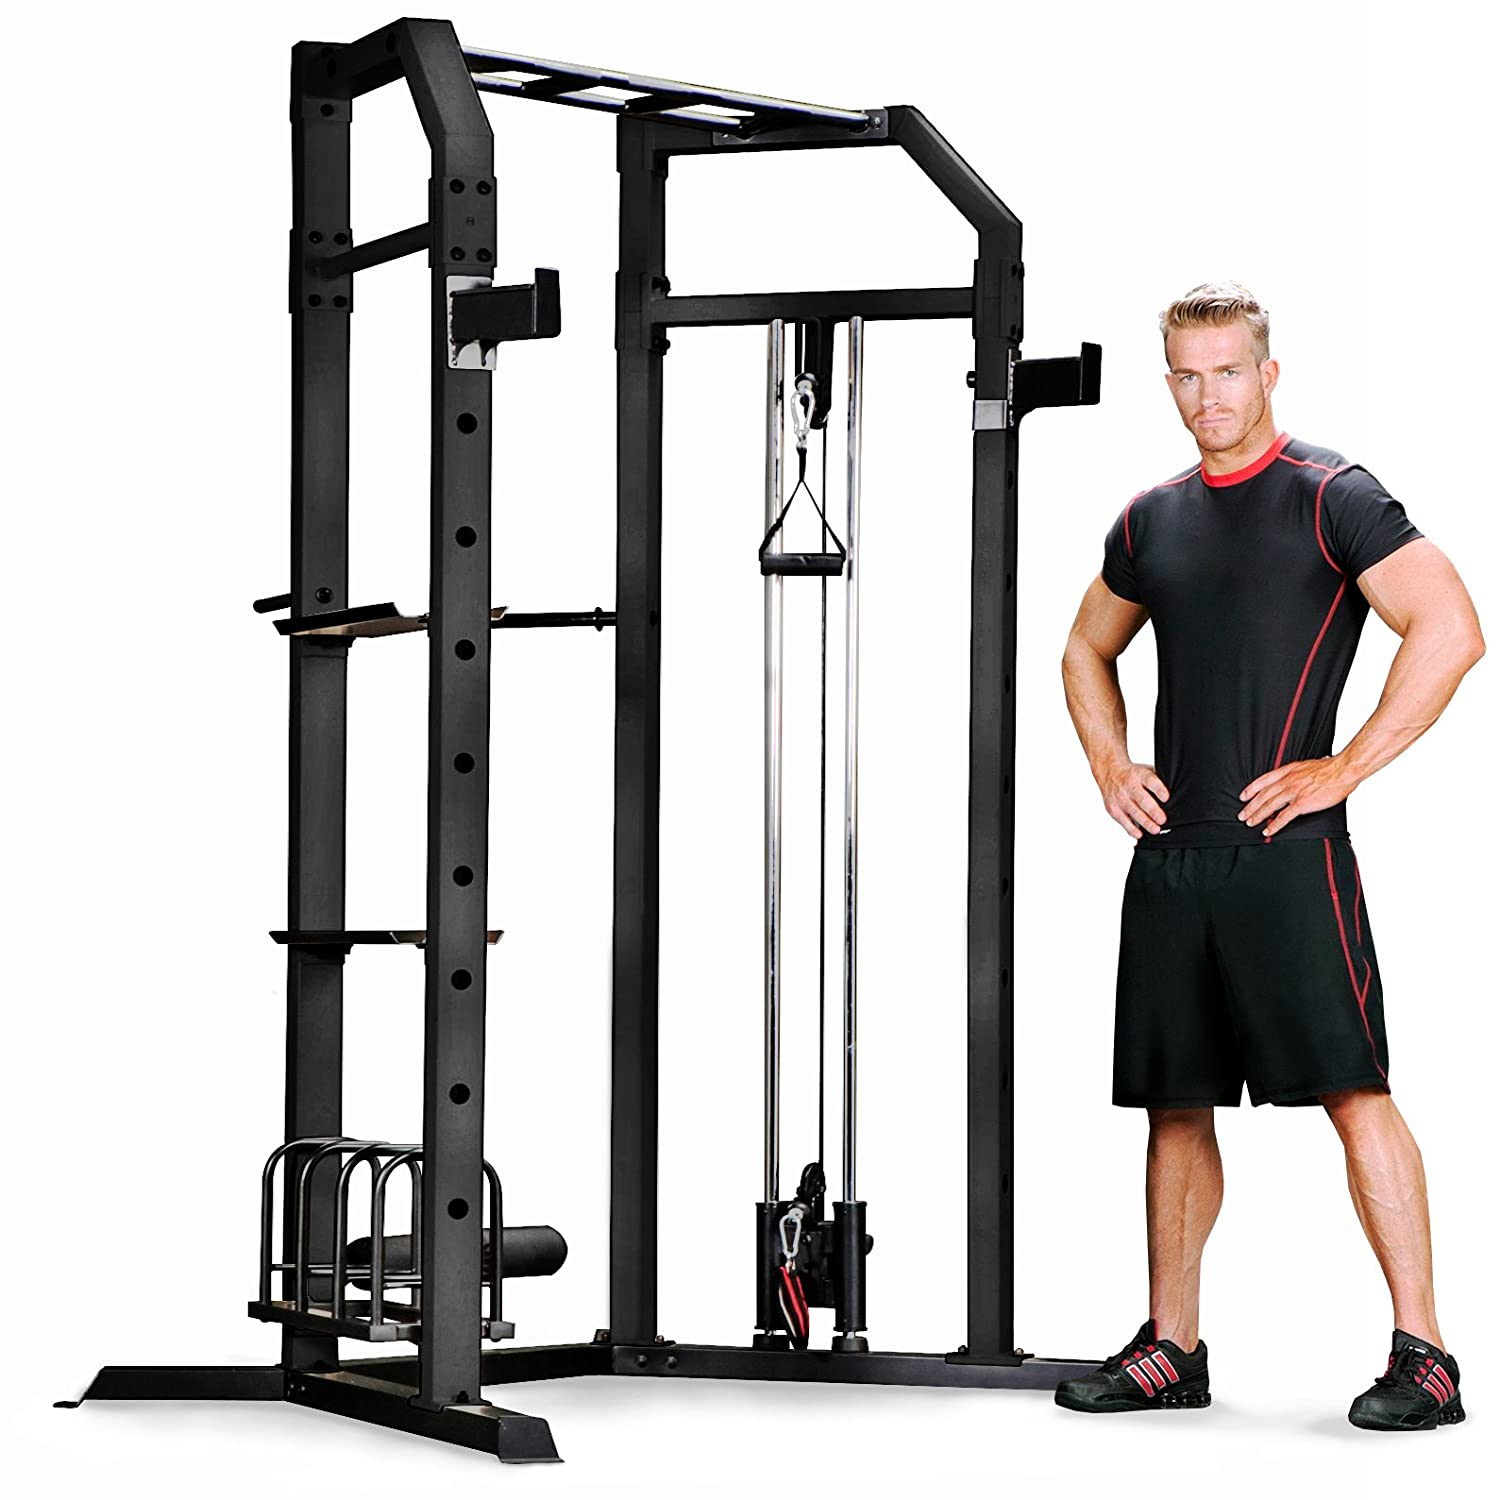 Amazon.com: Marcy Olympic Multi-purpose Strength Training Cage with Pull Up  Bars/Adjustable Bar Catchers and Pulley SM-3551: Sports & Outdoors